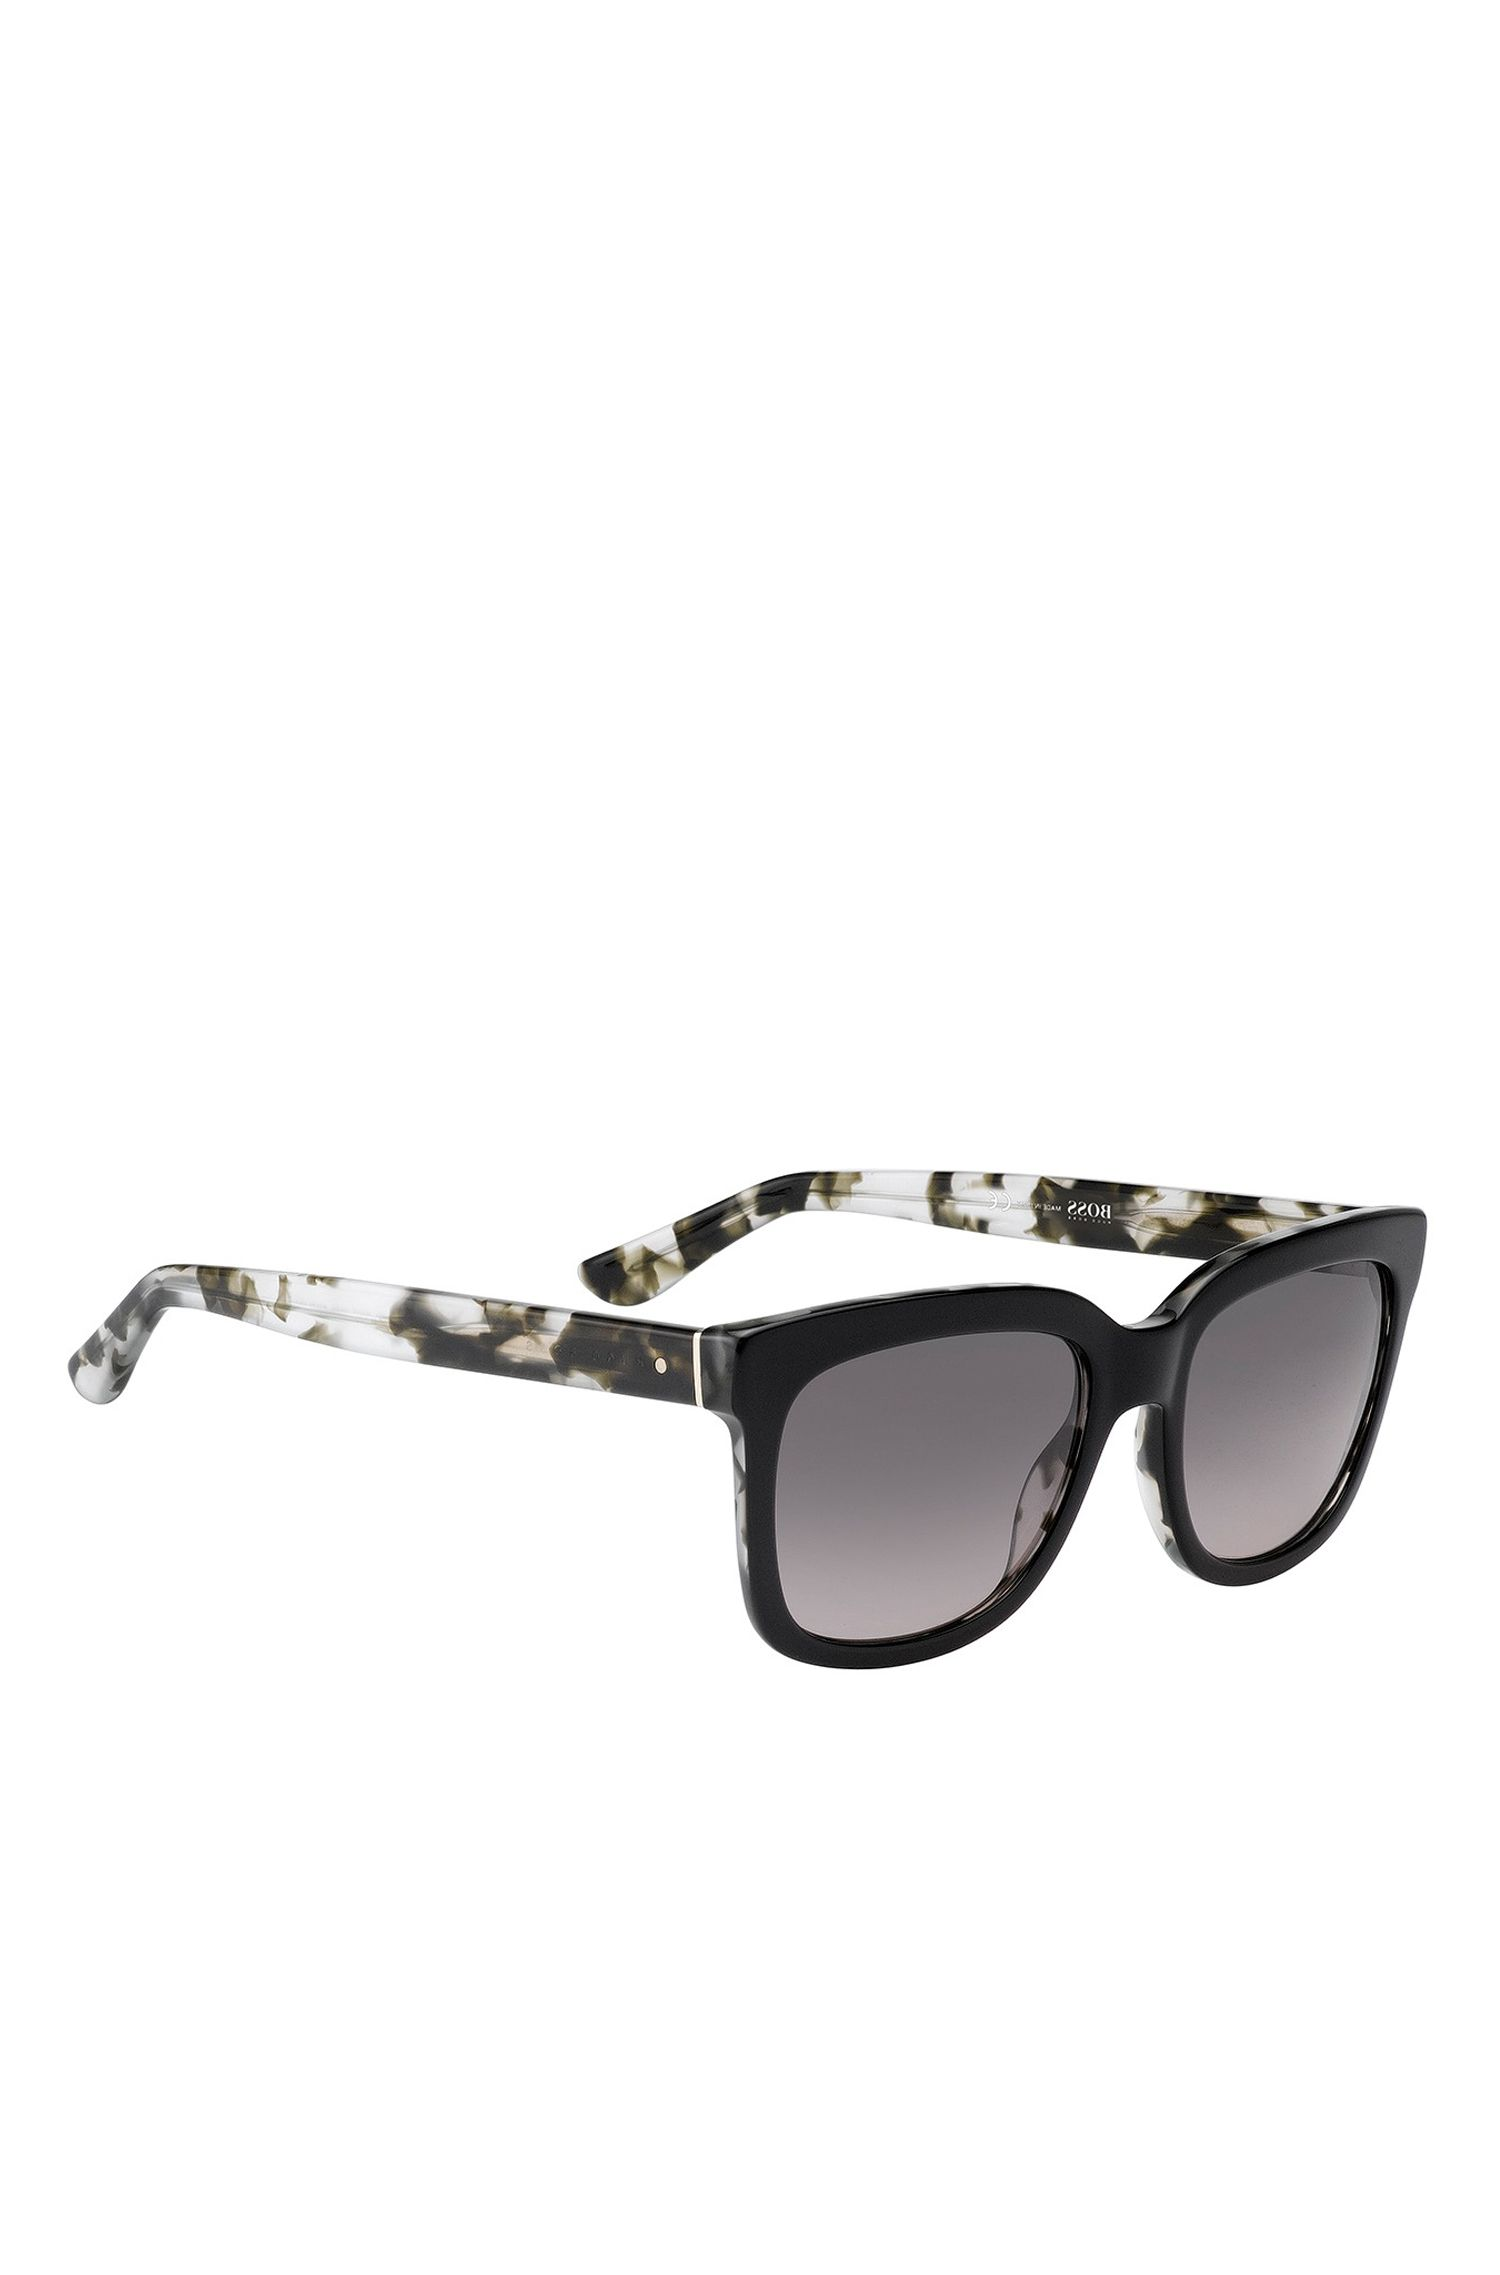 Gradient Lens Rectangular Sunglasses | BOSS 0741S